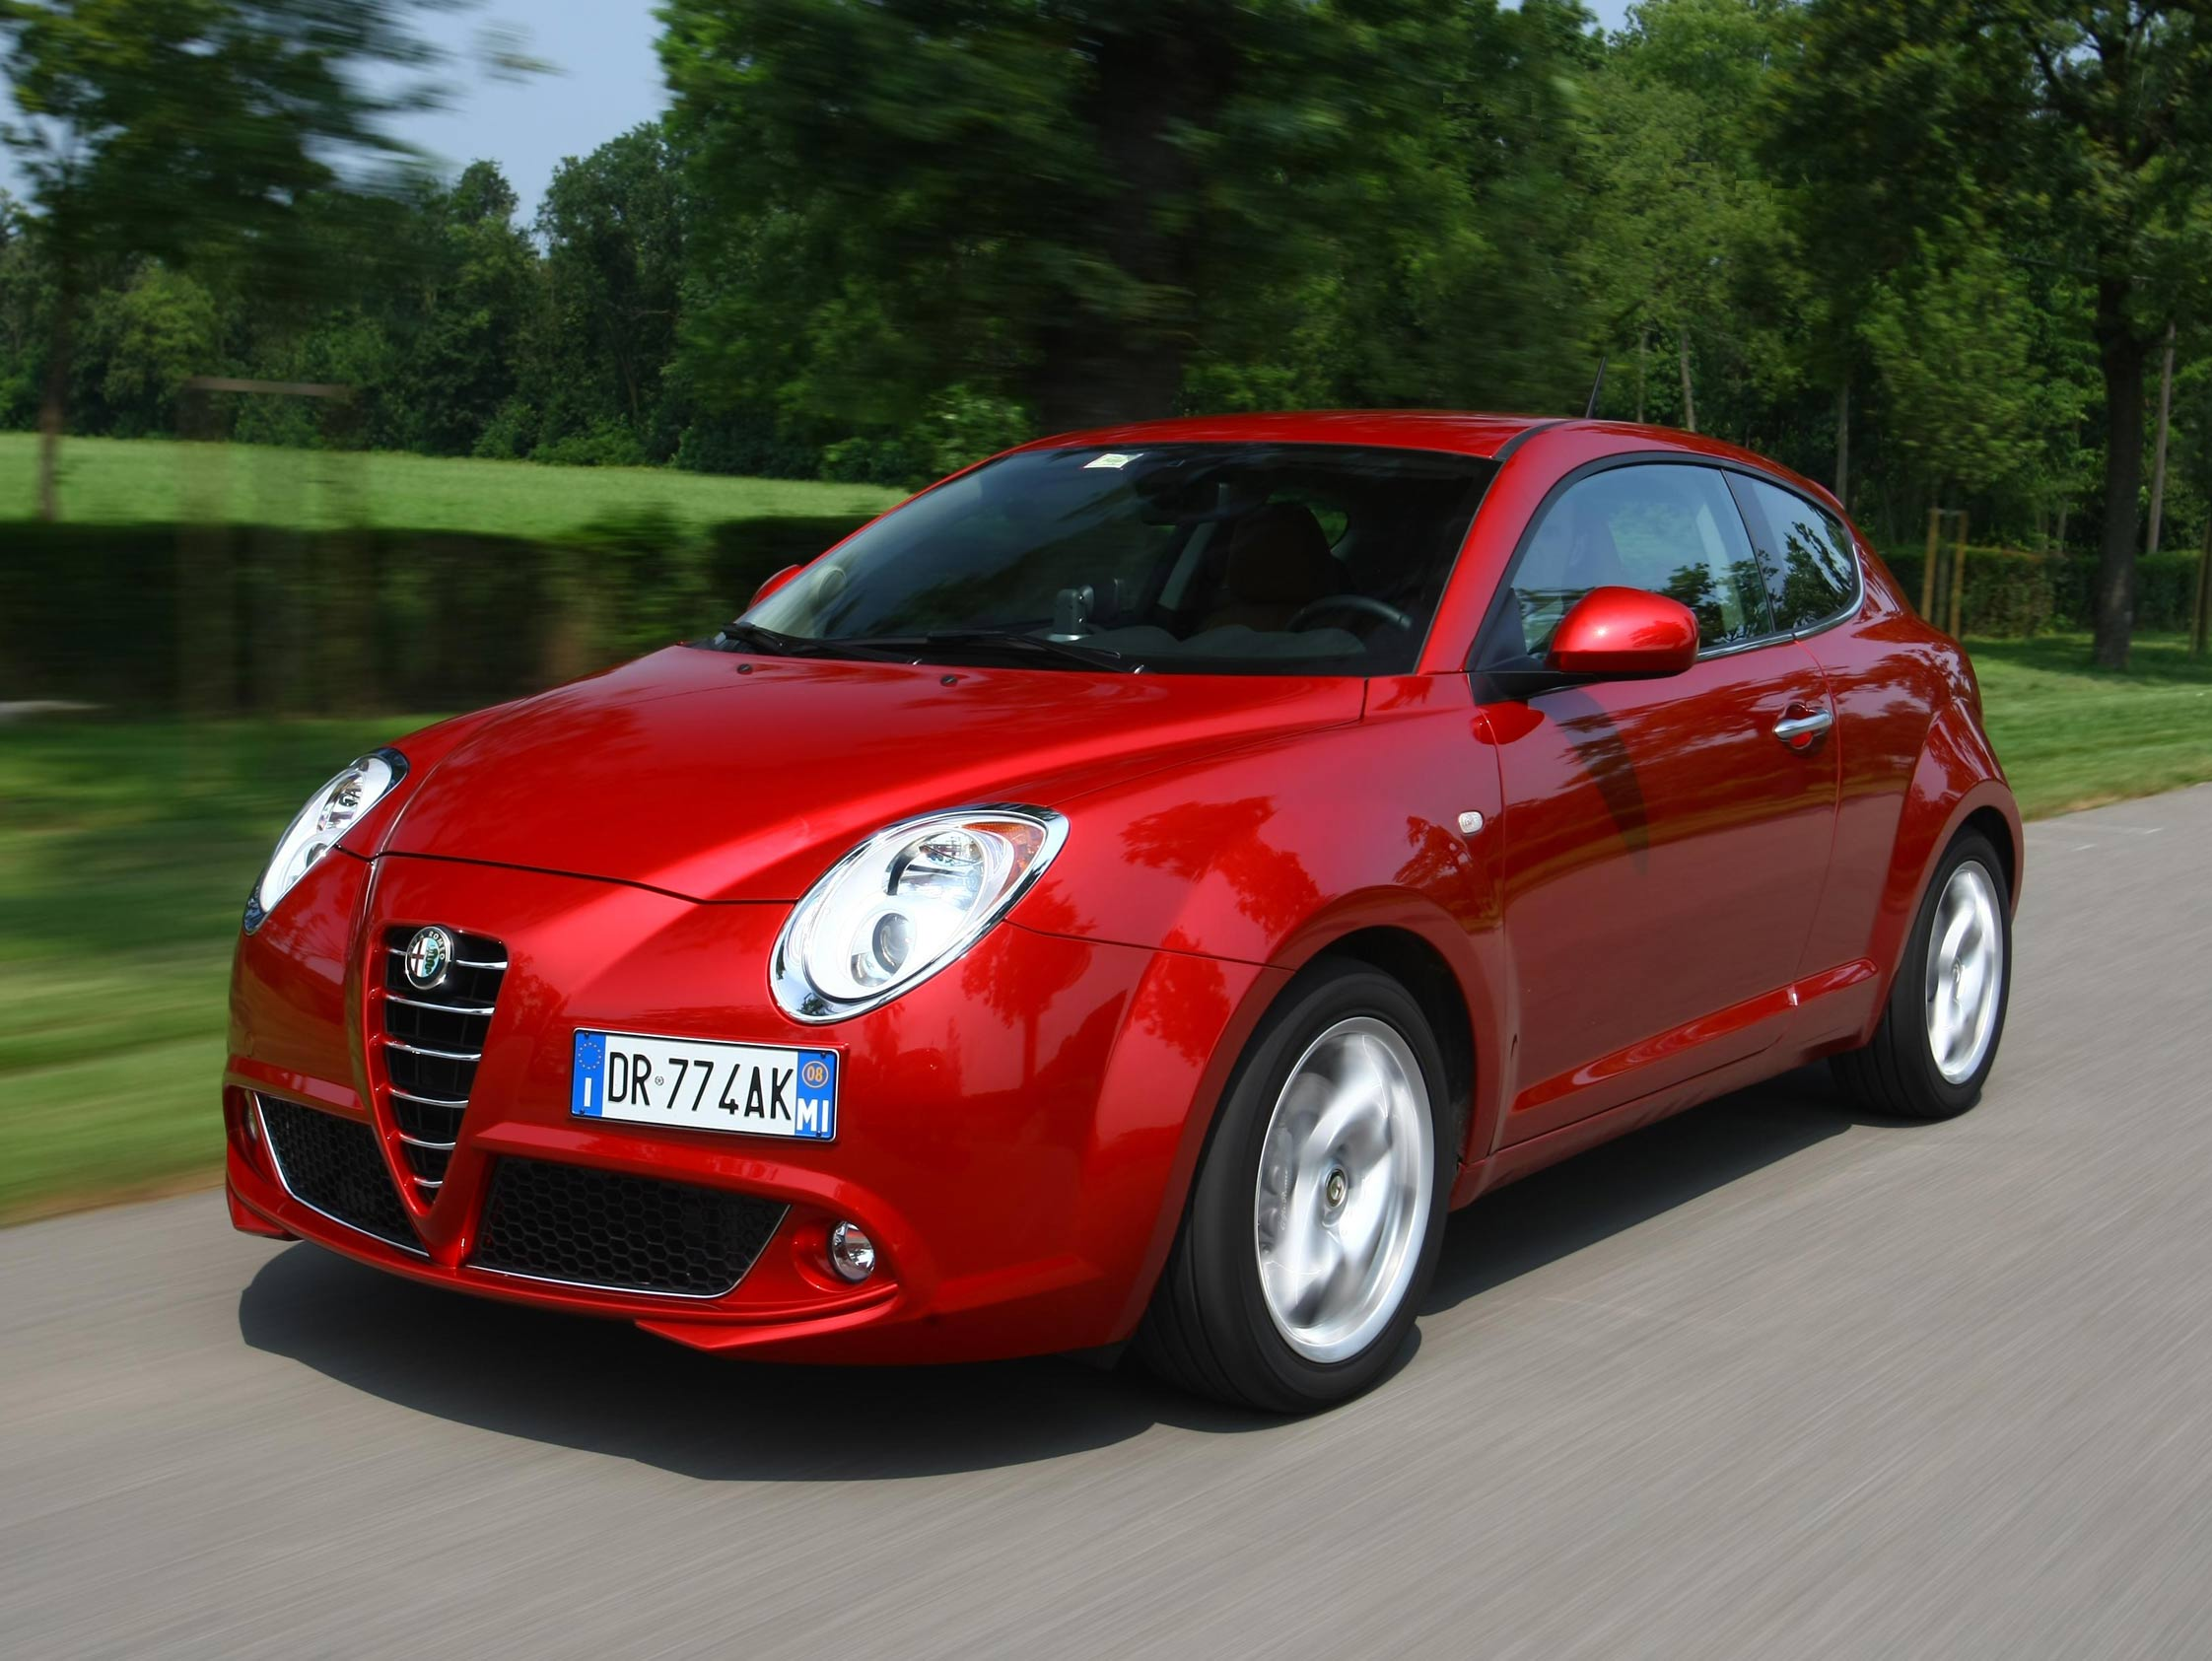 essai alfa romeo mito motorlegend. Black Bedroom Furniture Sets. Home Design Ideas